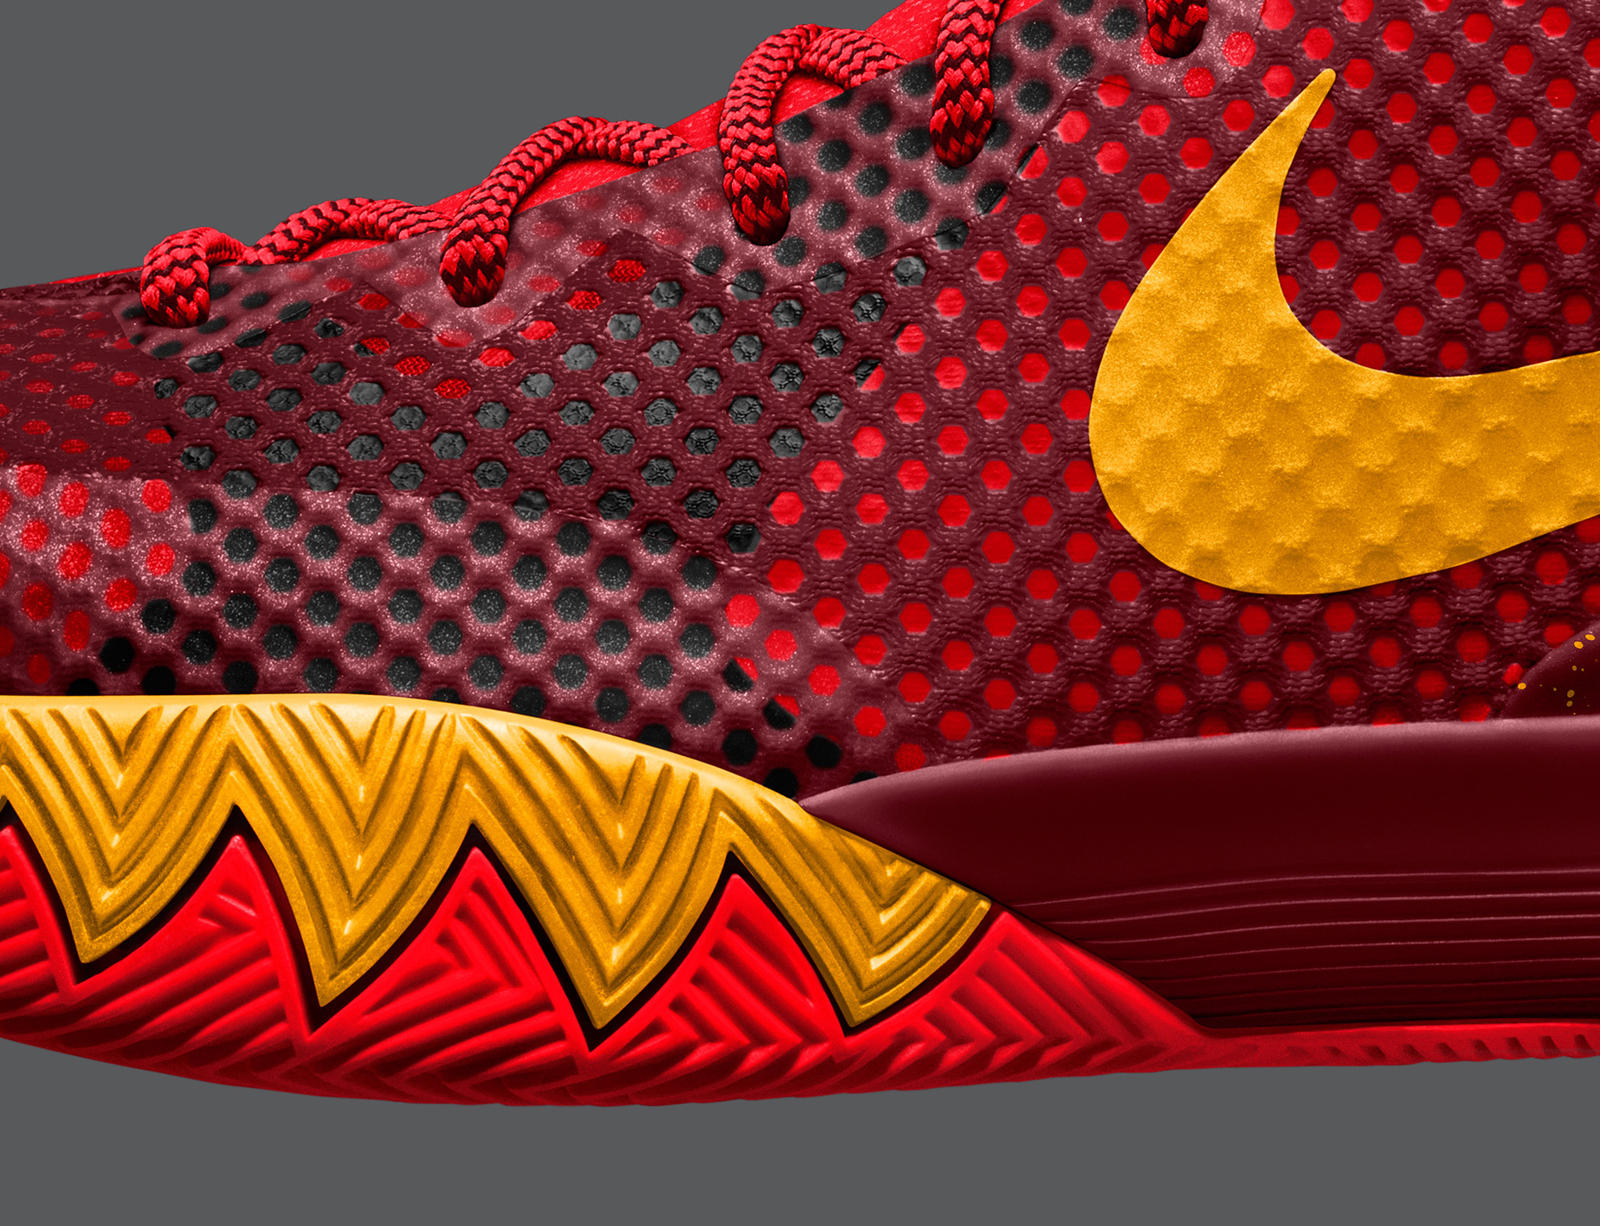 kyrie irving unveils the kyrie 1 nikeid shoe in brooklyn